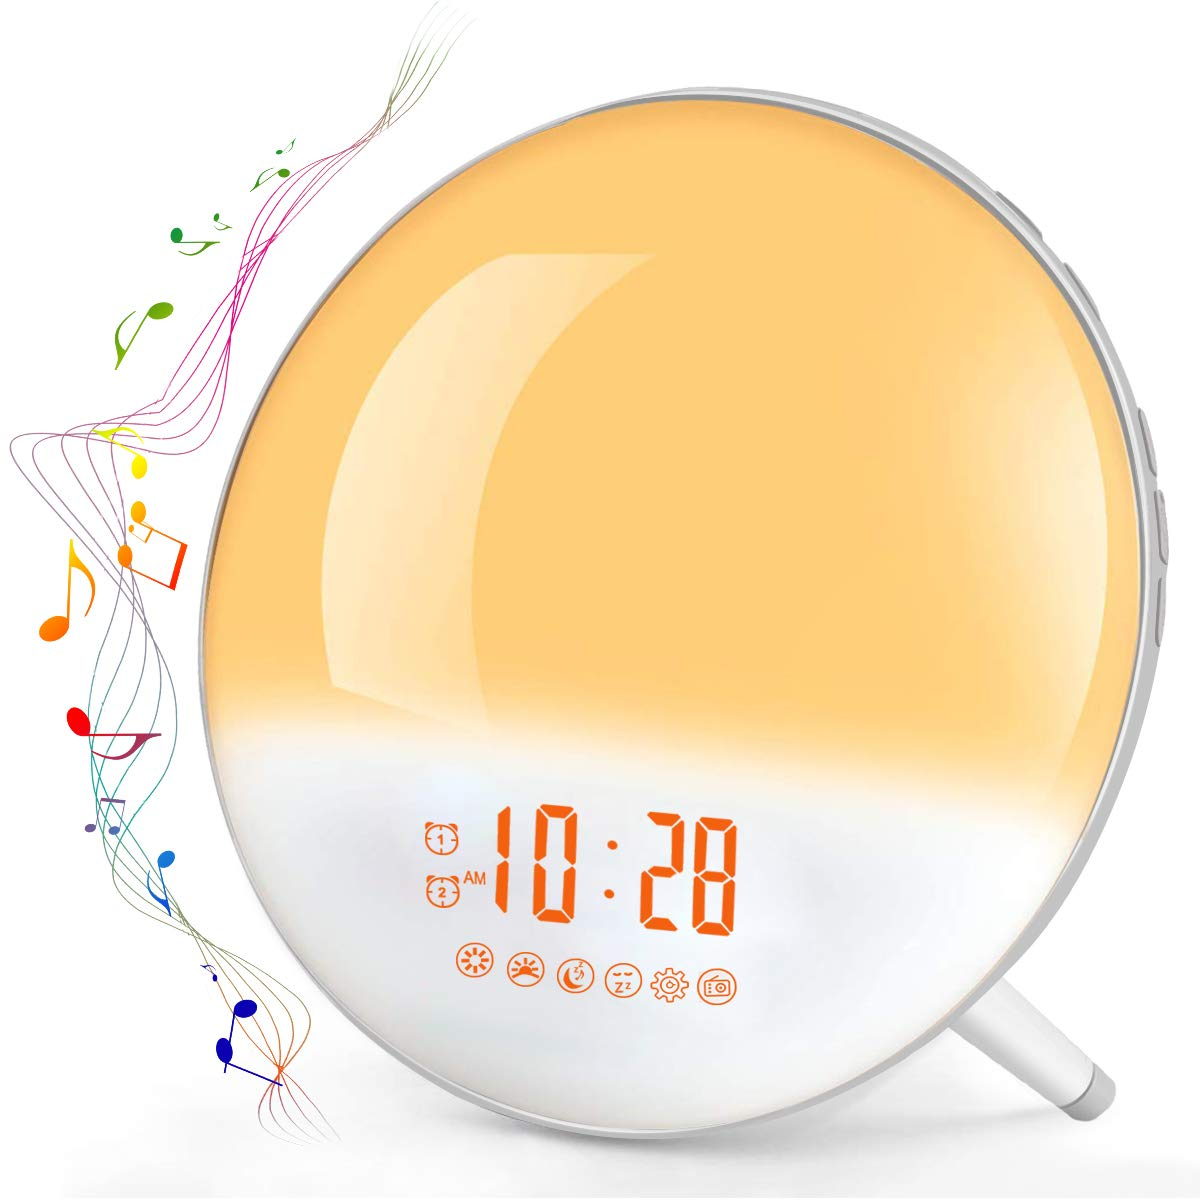 Sunrise Alarm Clock, Te-Rich Wake Up Light with FM Radio/Dual Alarm/7 Nature Sounds & Light Colors/Snooze/20 Brightness, Sleep Aid Lamp Dawn Simulator for Heavy Sleepers/Kids/Teen Girls Boys Bedrooms by Te-Rich